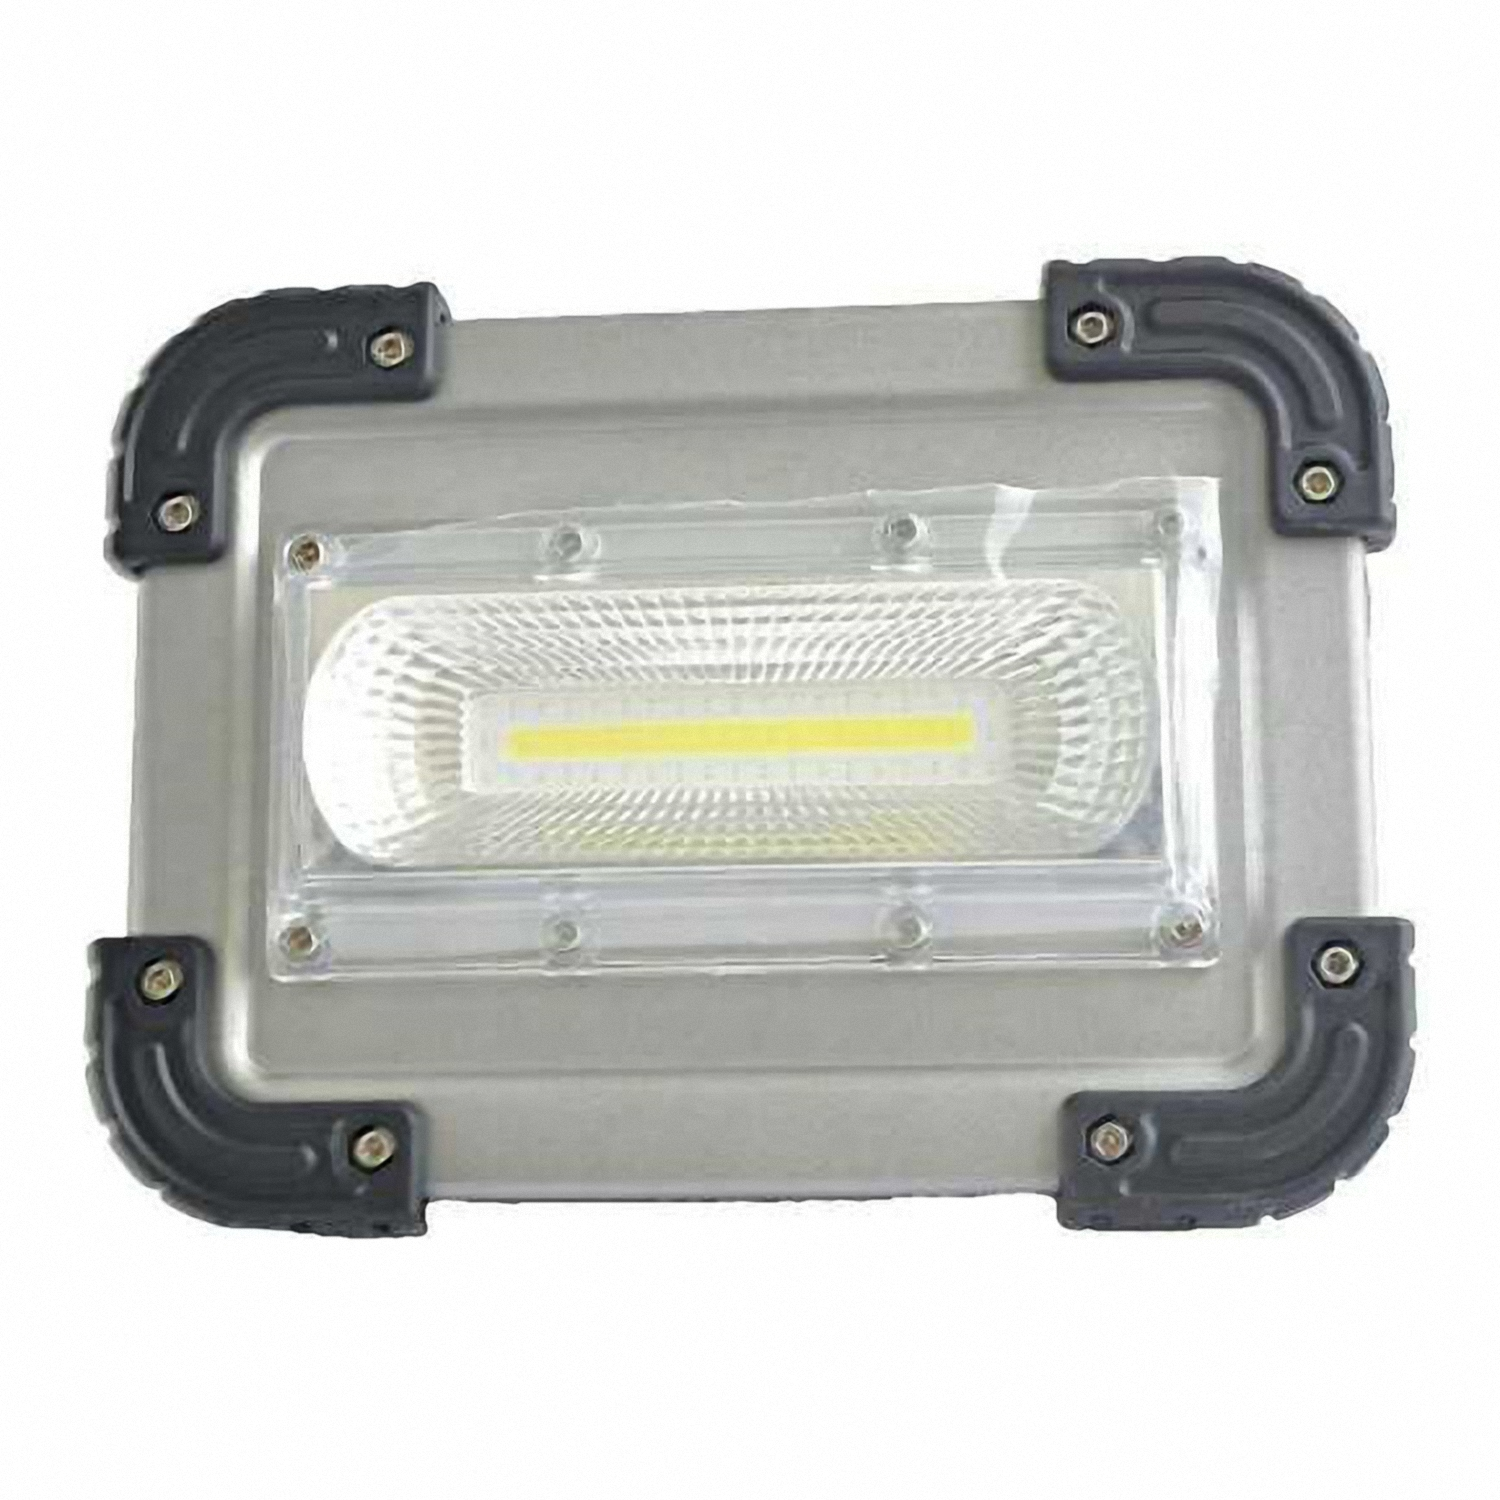 2018 Hot 20W Portable LED COB Light,Outdoor Waterproof Flood Lights, for Camping,Hiking,Car Repairing,Workshop,Construction Si